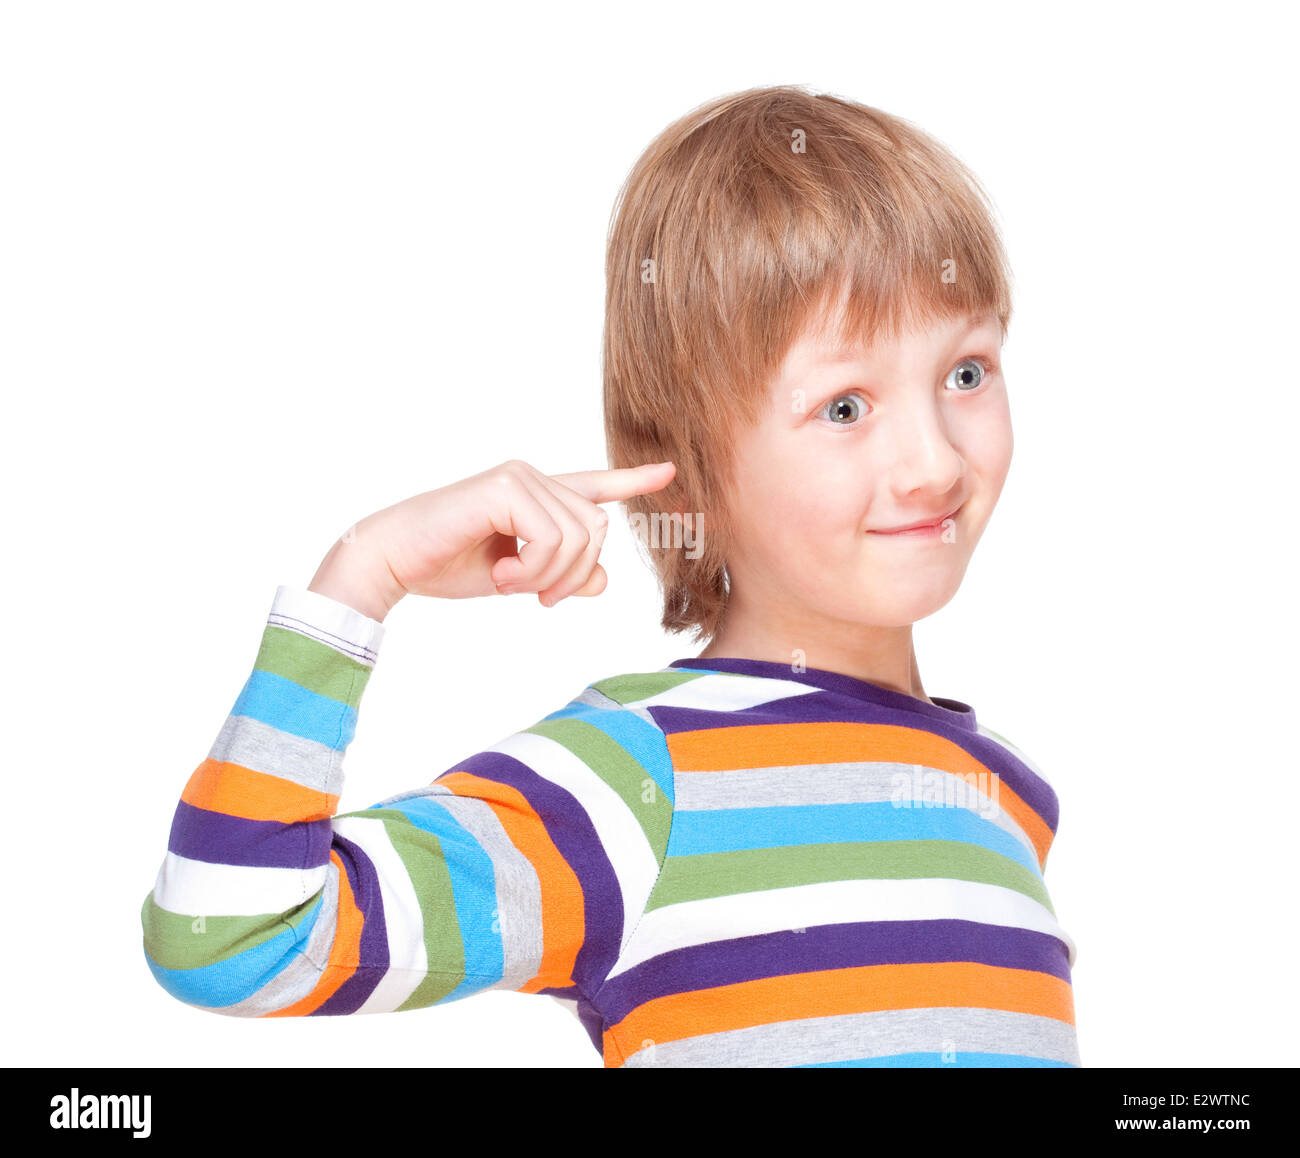 Boy in Colorful Shirt Pointing Finger to his Head - Isolated on White - Stock Image